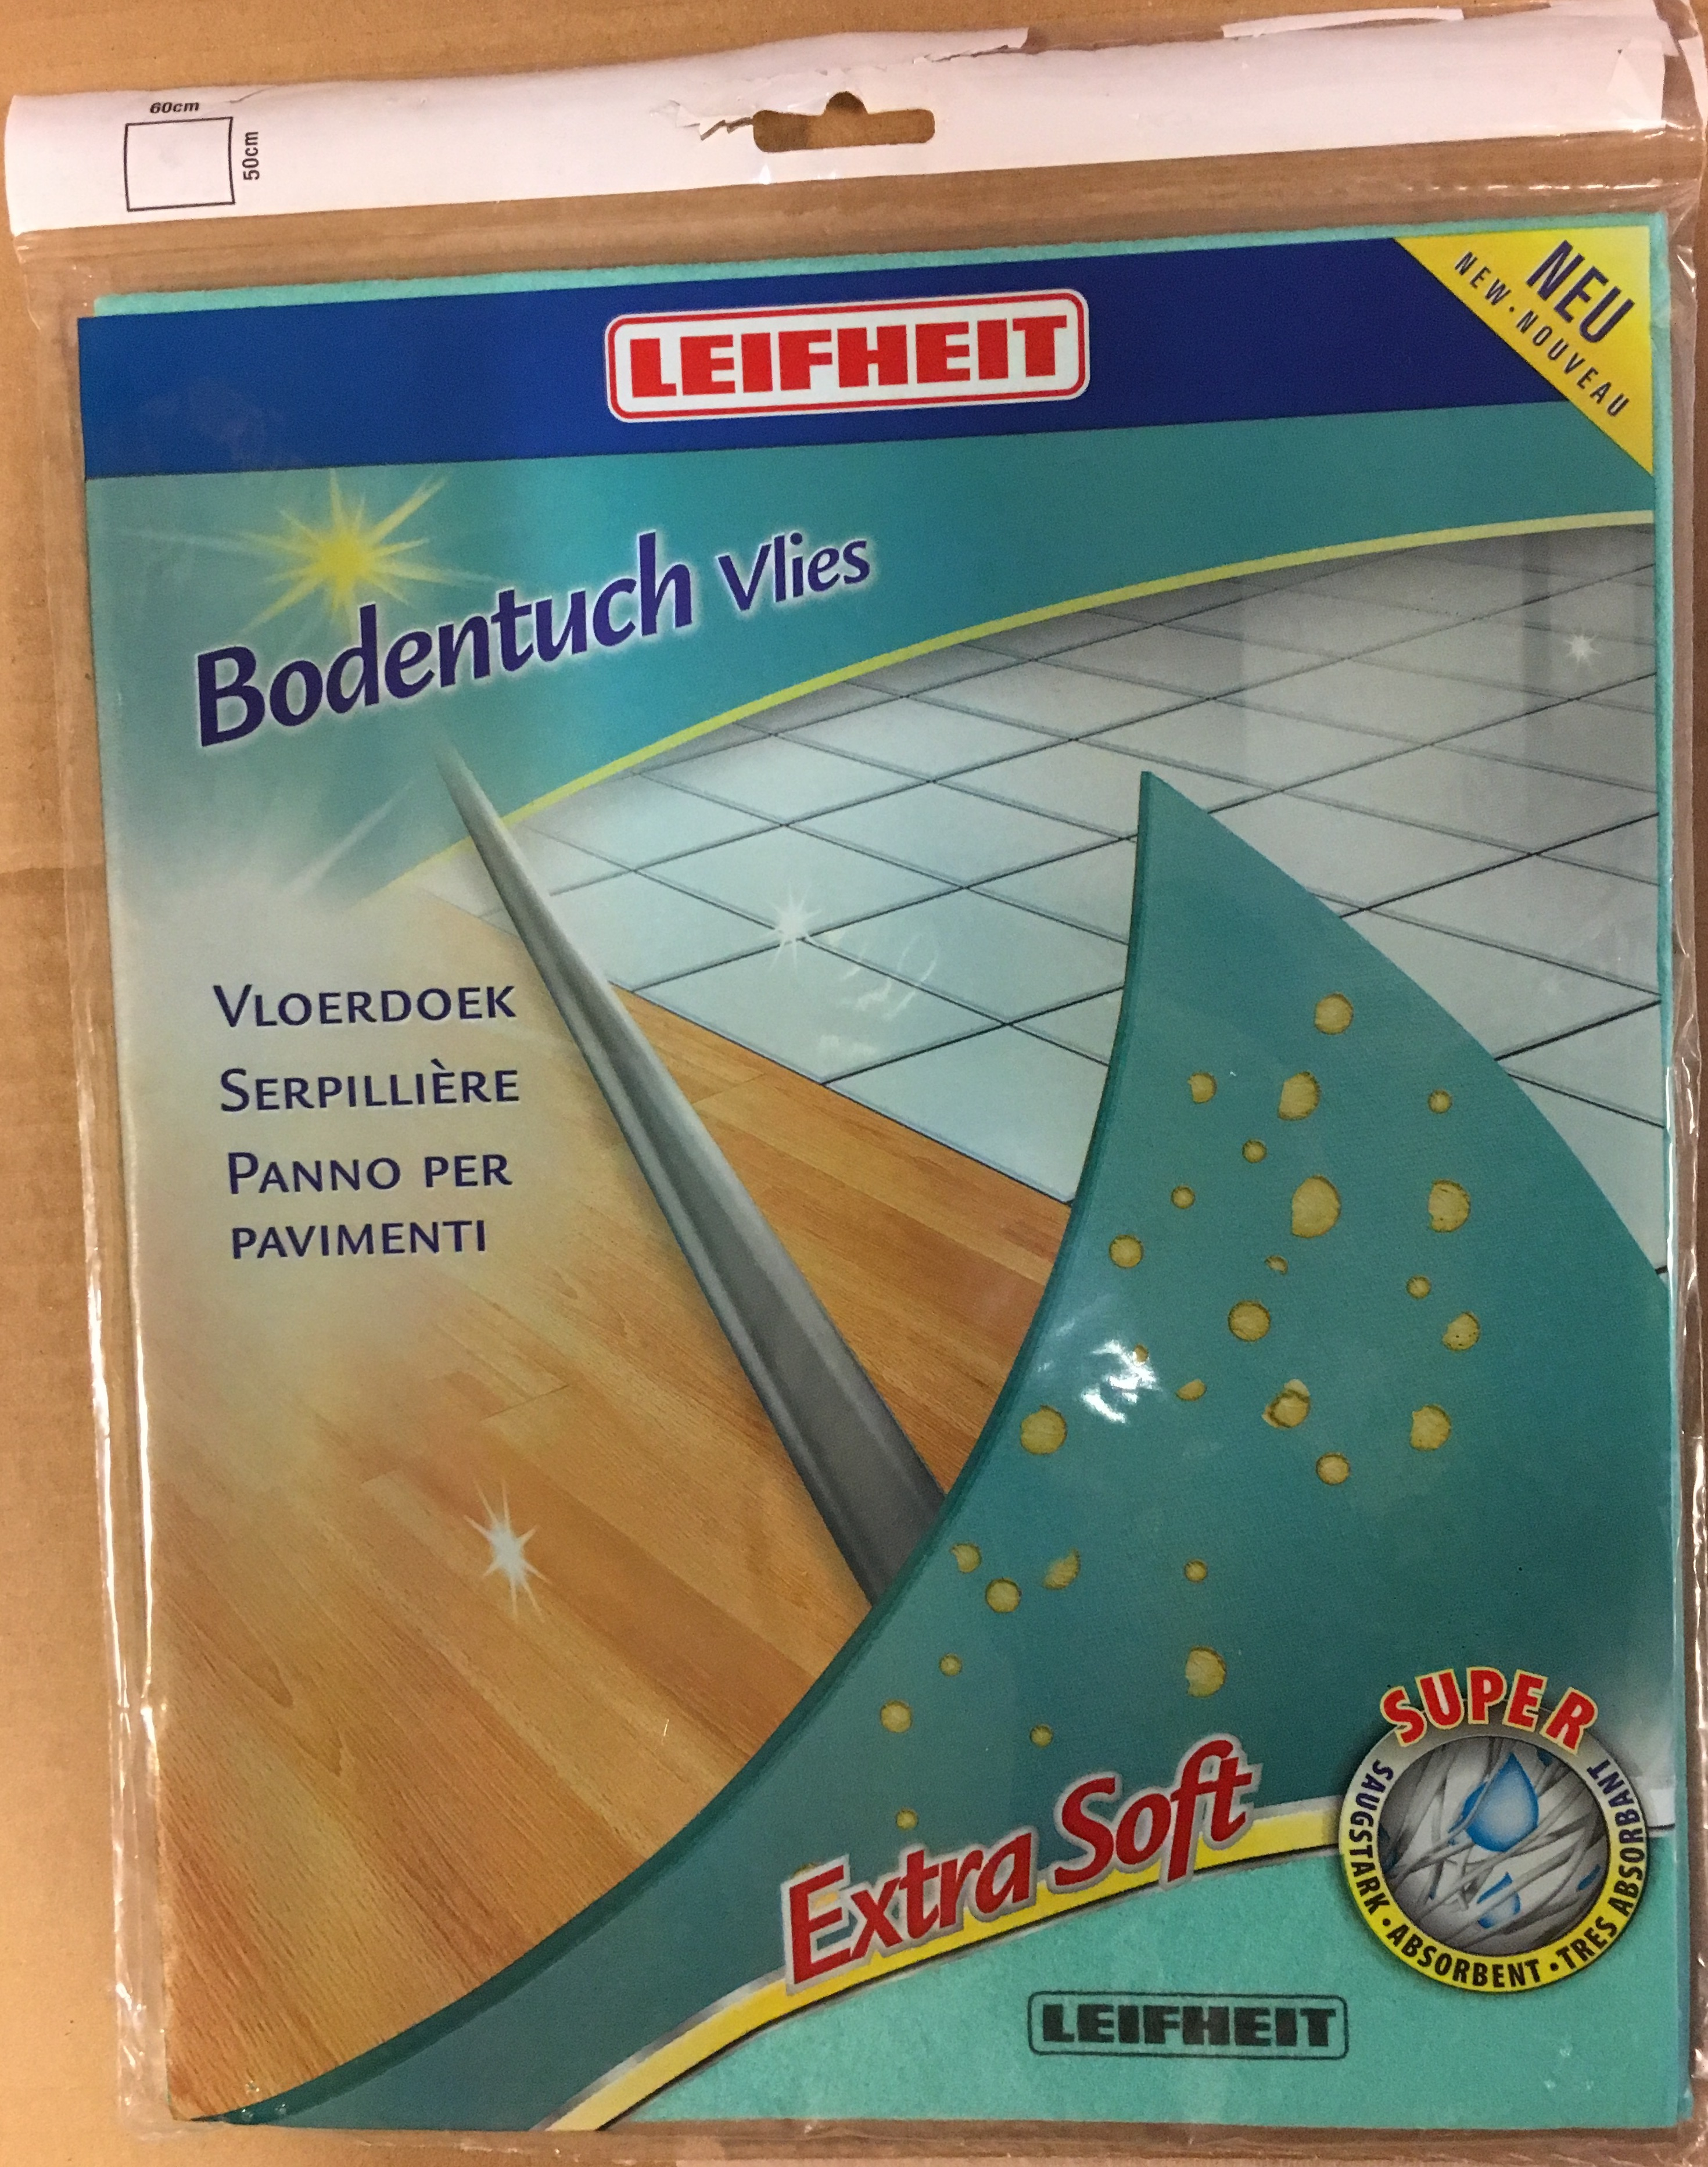 Leifheit Bodentuch Vlies extra soft super saugstark 40008